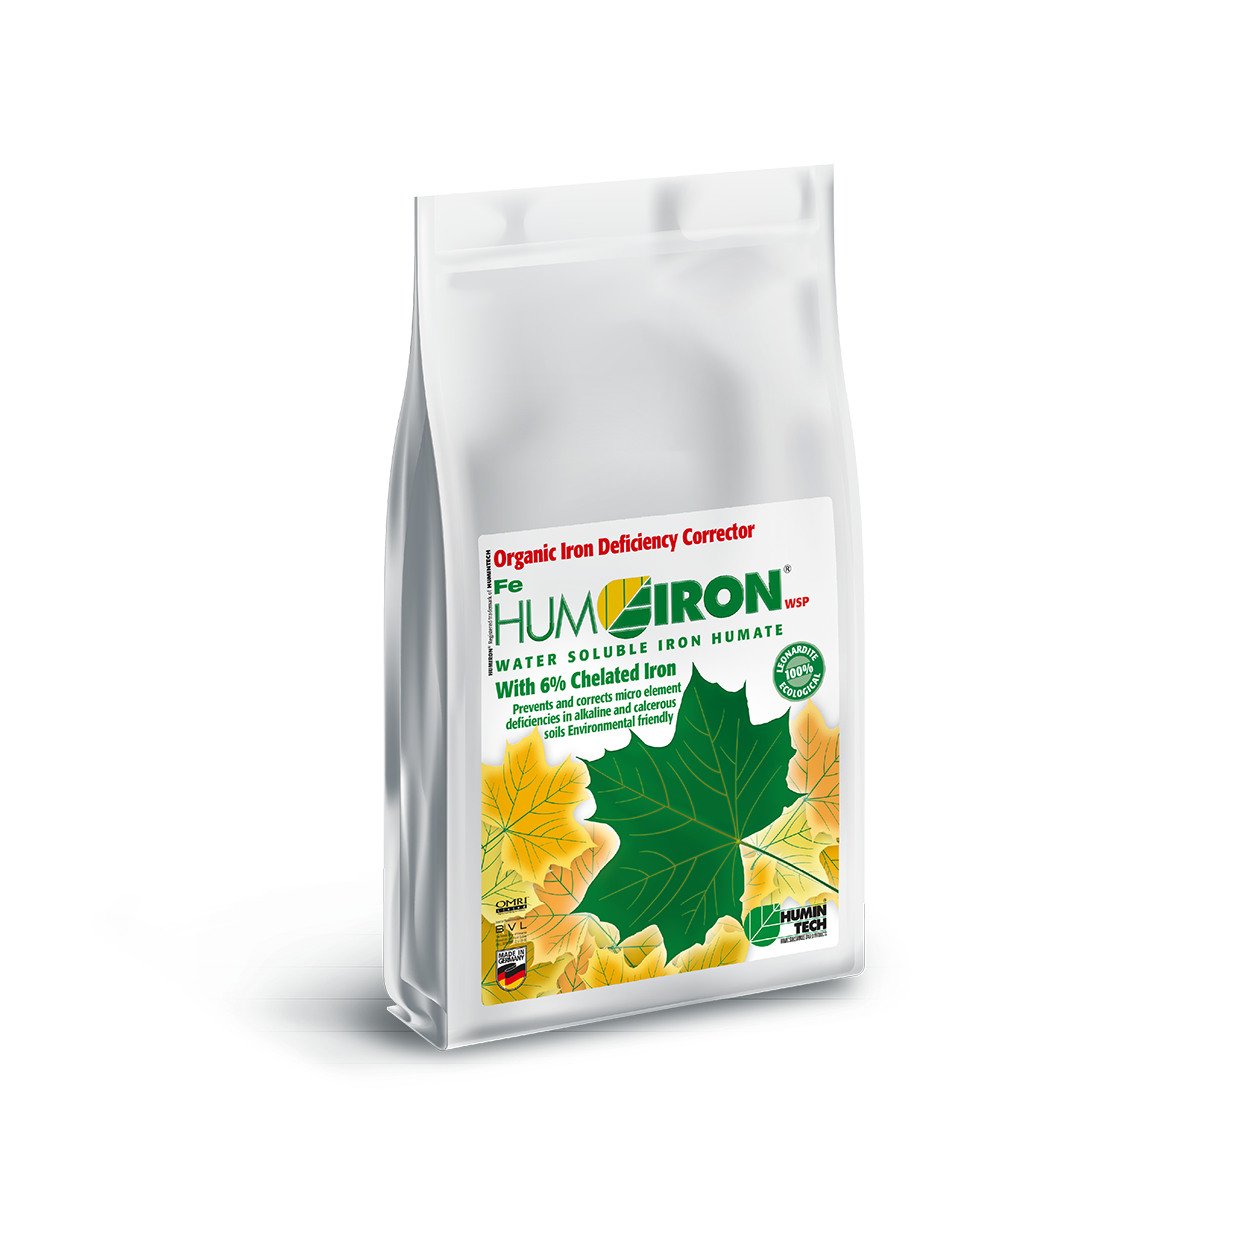 HUMIRON Fe WSP Organic Iron Deficiency Corrector Iron Humate with 6% Chelated and Complexed Iron bag